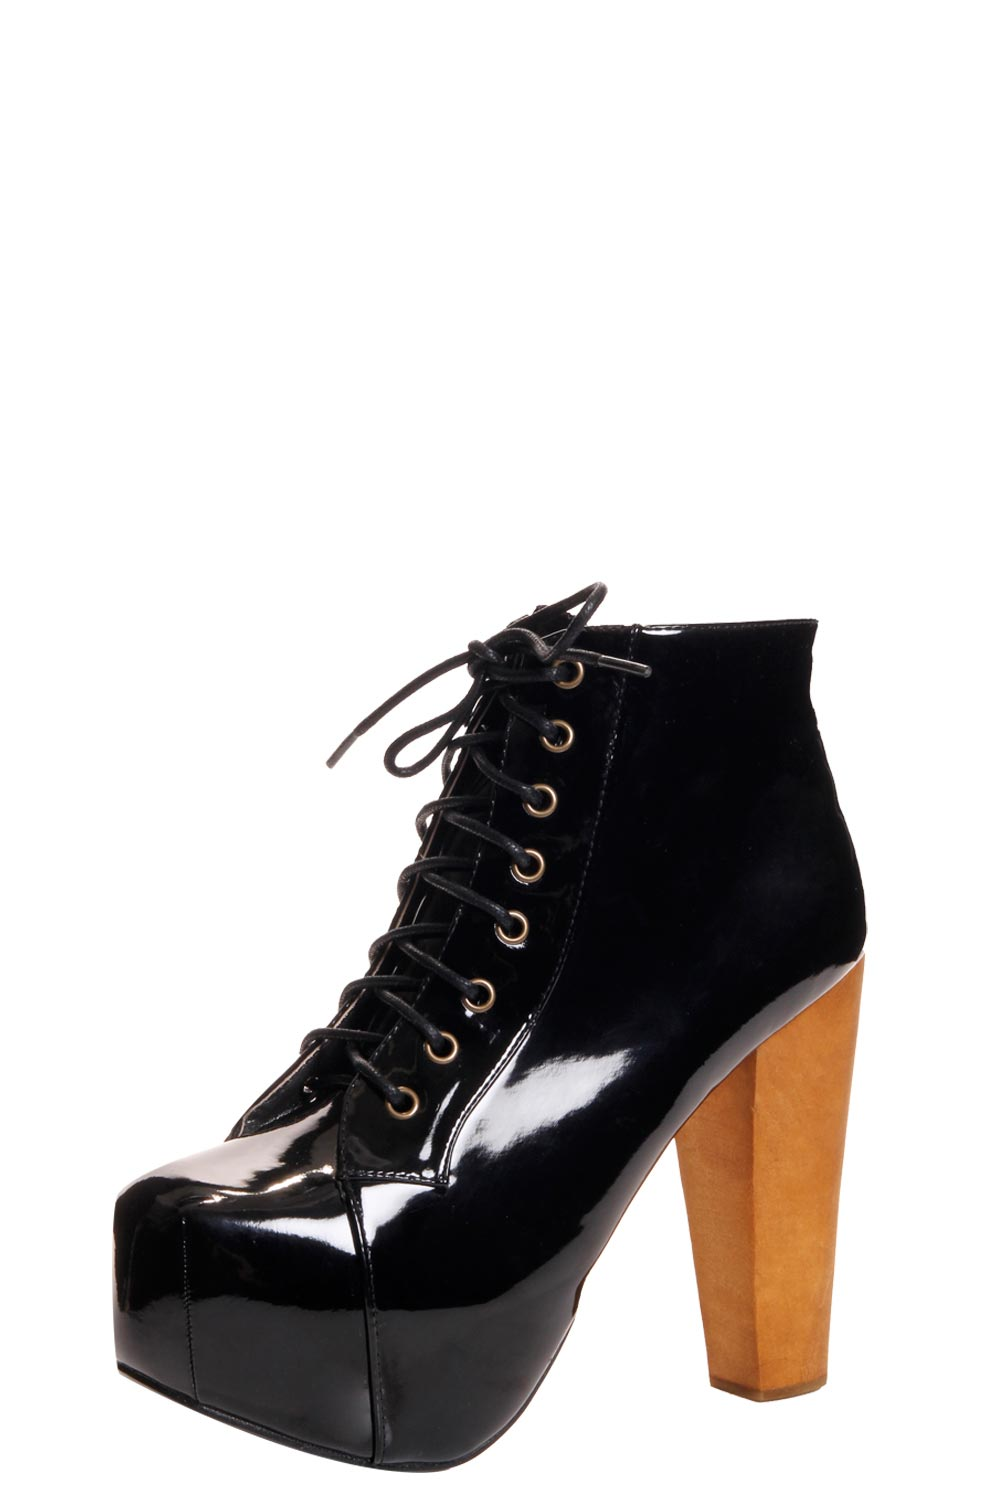 plumesdepaon dupes for jeffrey cbell litas